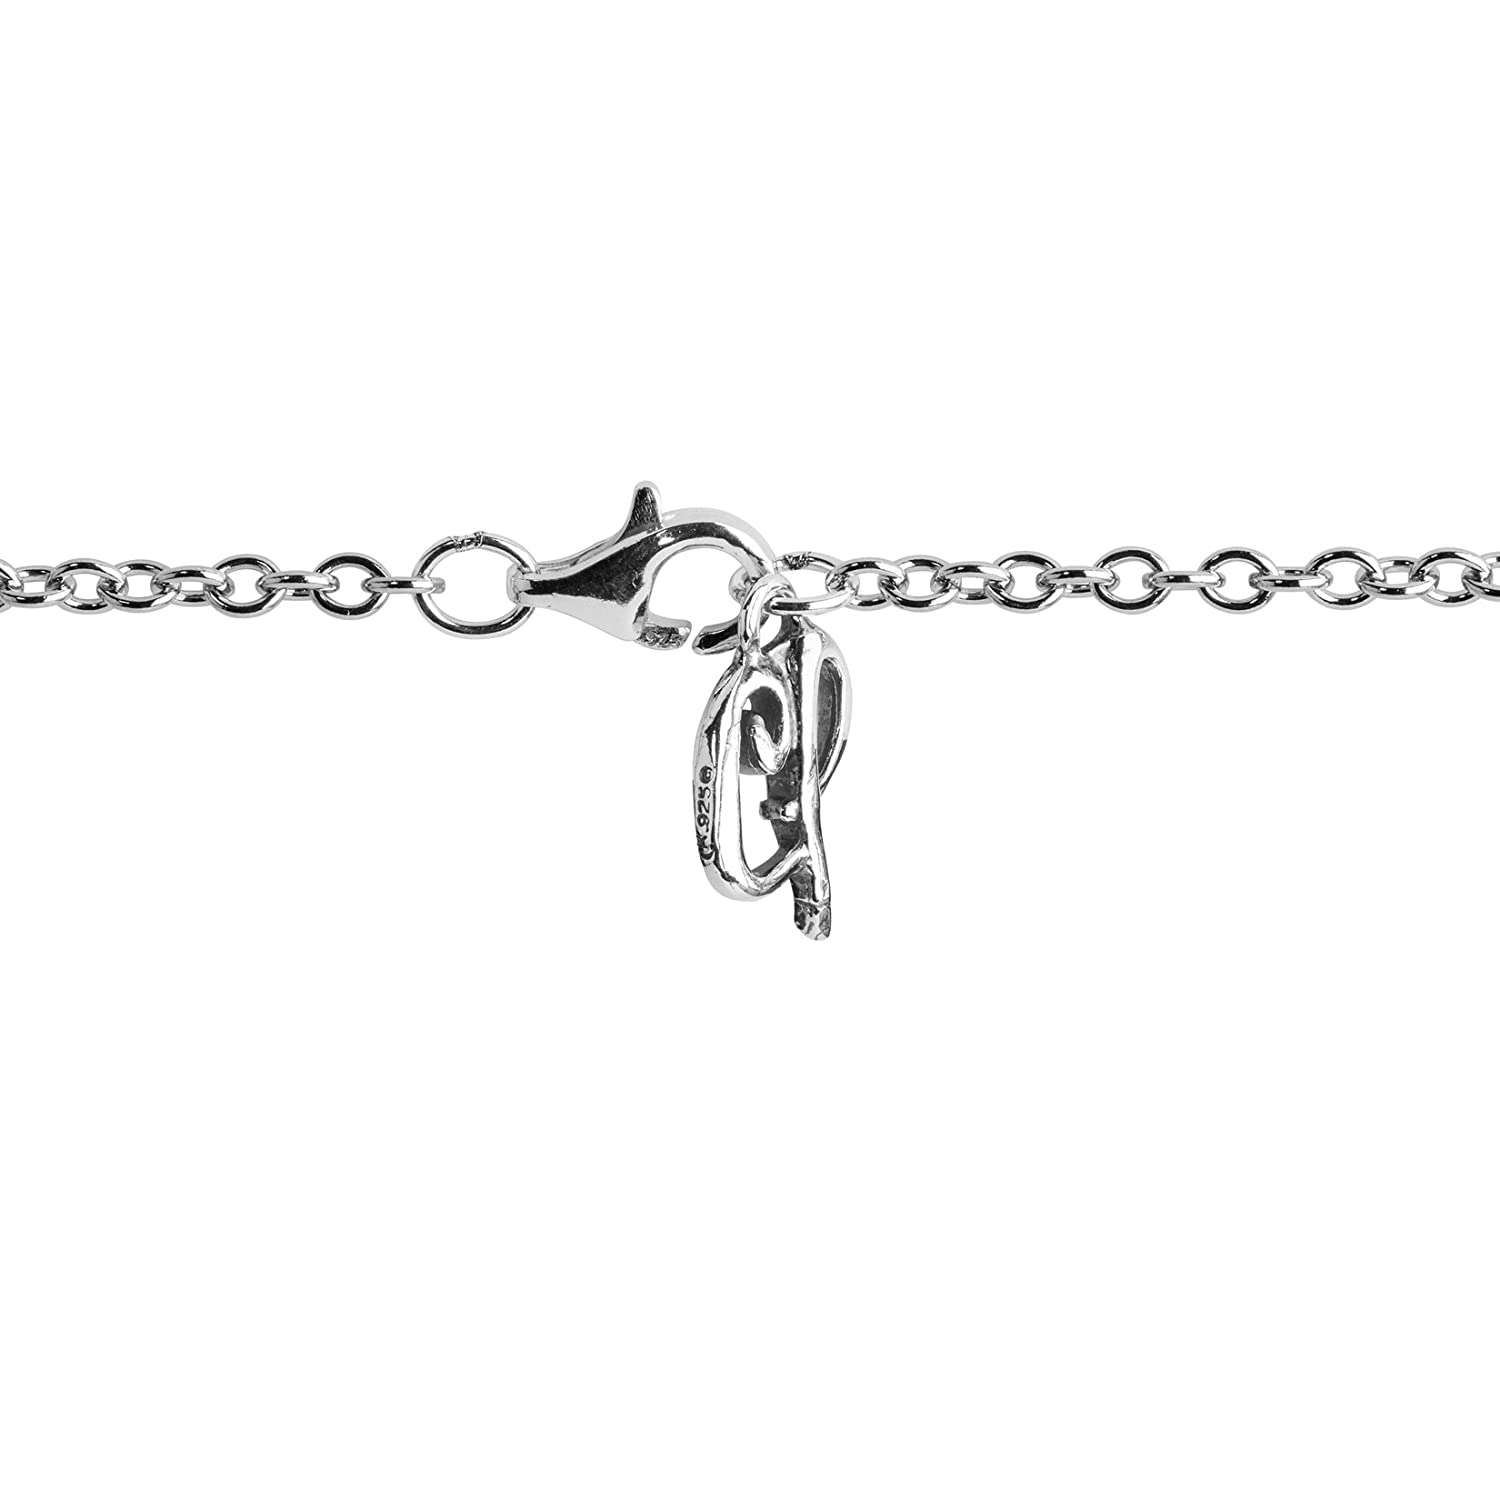 Simply Fabulous Sterling Silver /& Gemstone 16-18 Inch Vertical Bar Necklace Relios cp5-4828-XXX